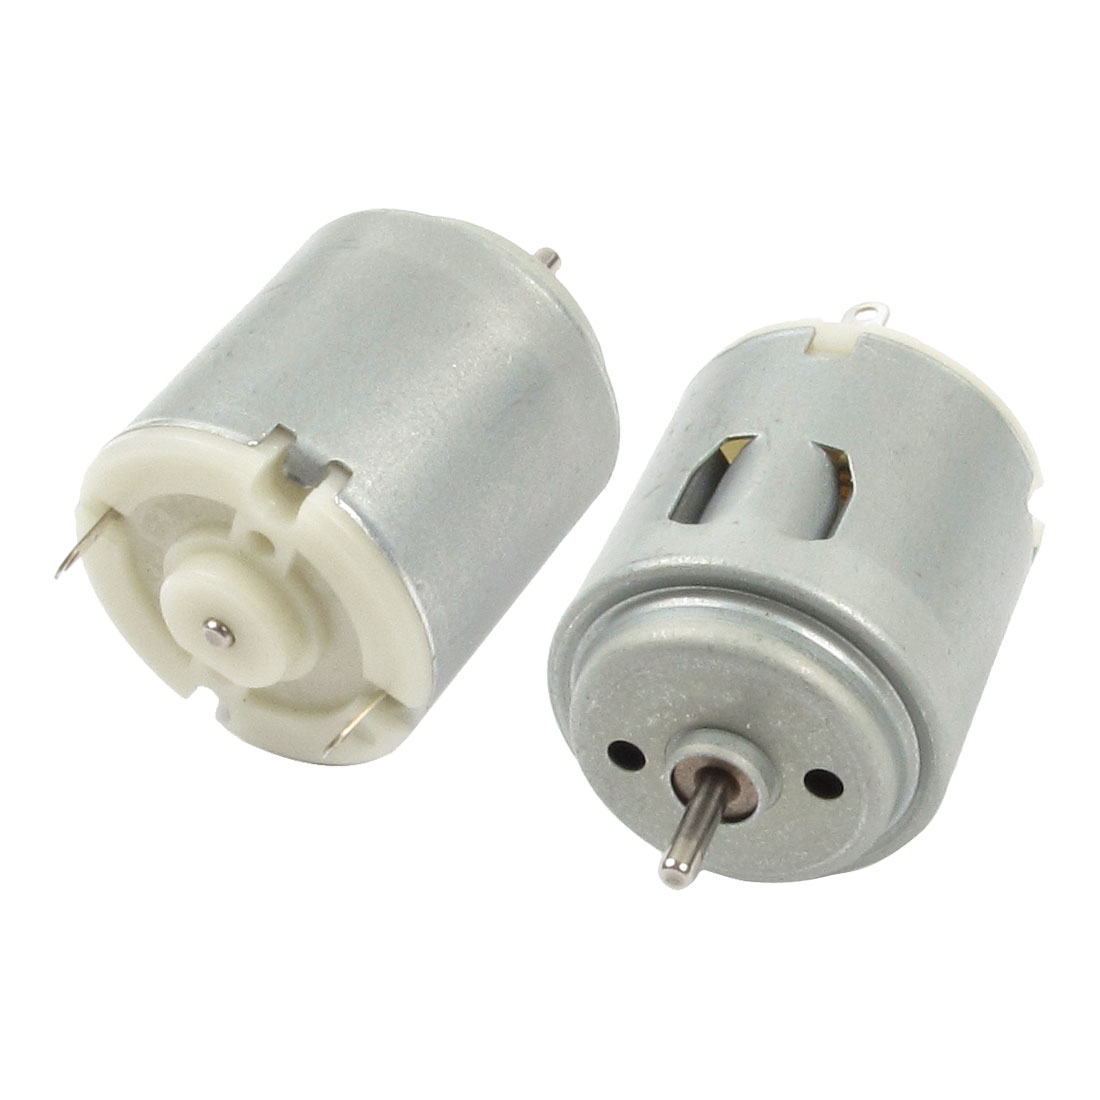 2PCS DC 3V-6V R260 Mini Motors for Remote Control Toy Car